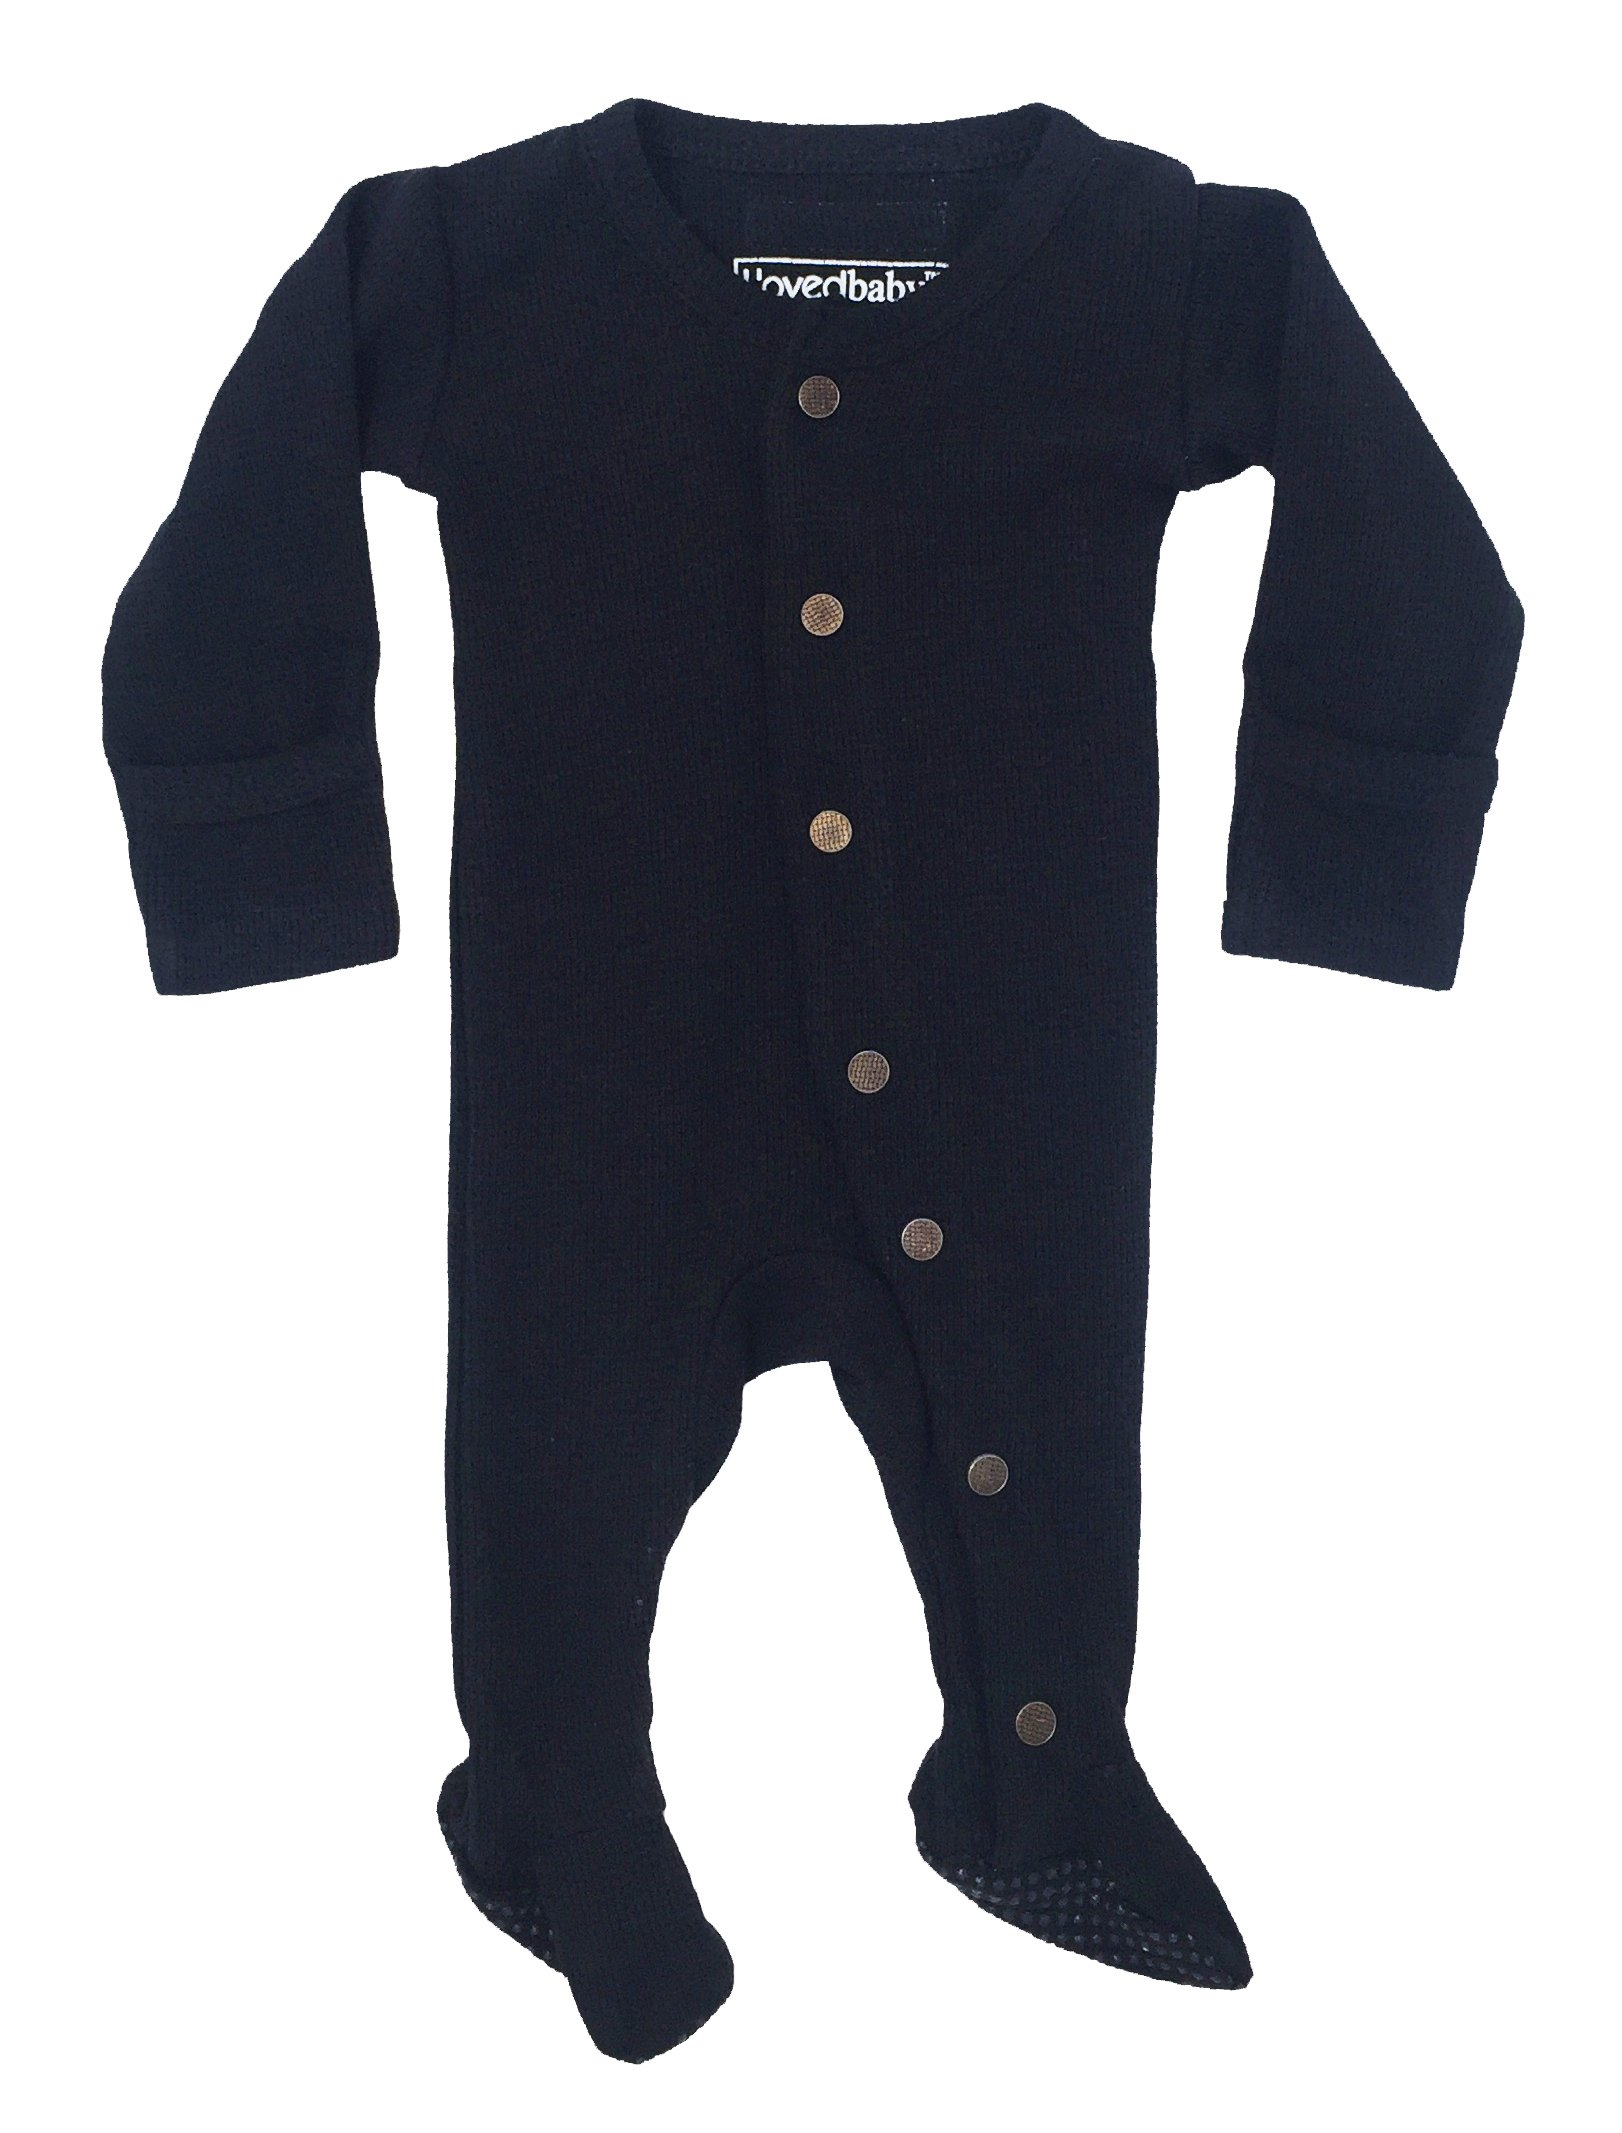 L'ovedbaby Unisex-Baby Organic Cotton Footed Overall (NB/Preemie (4-7 lbs.), Thermal Black)